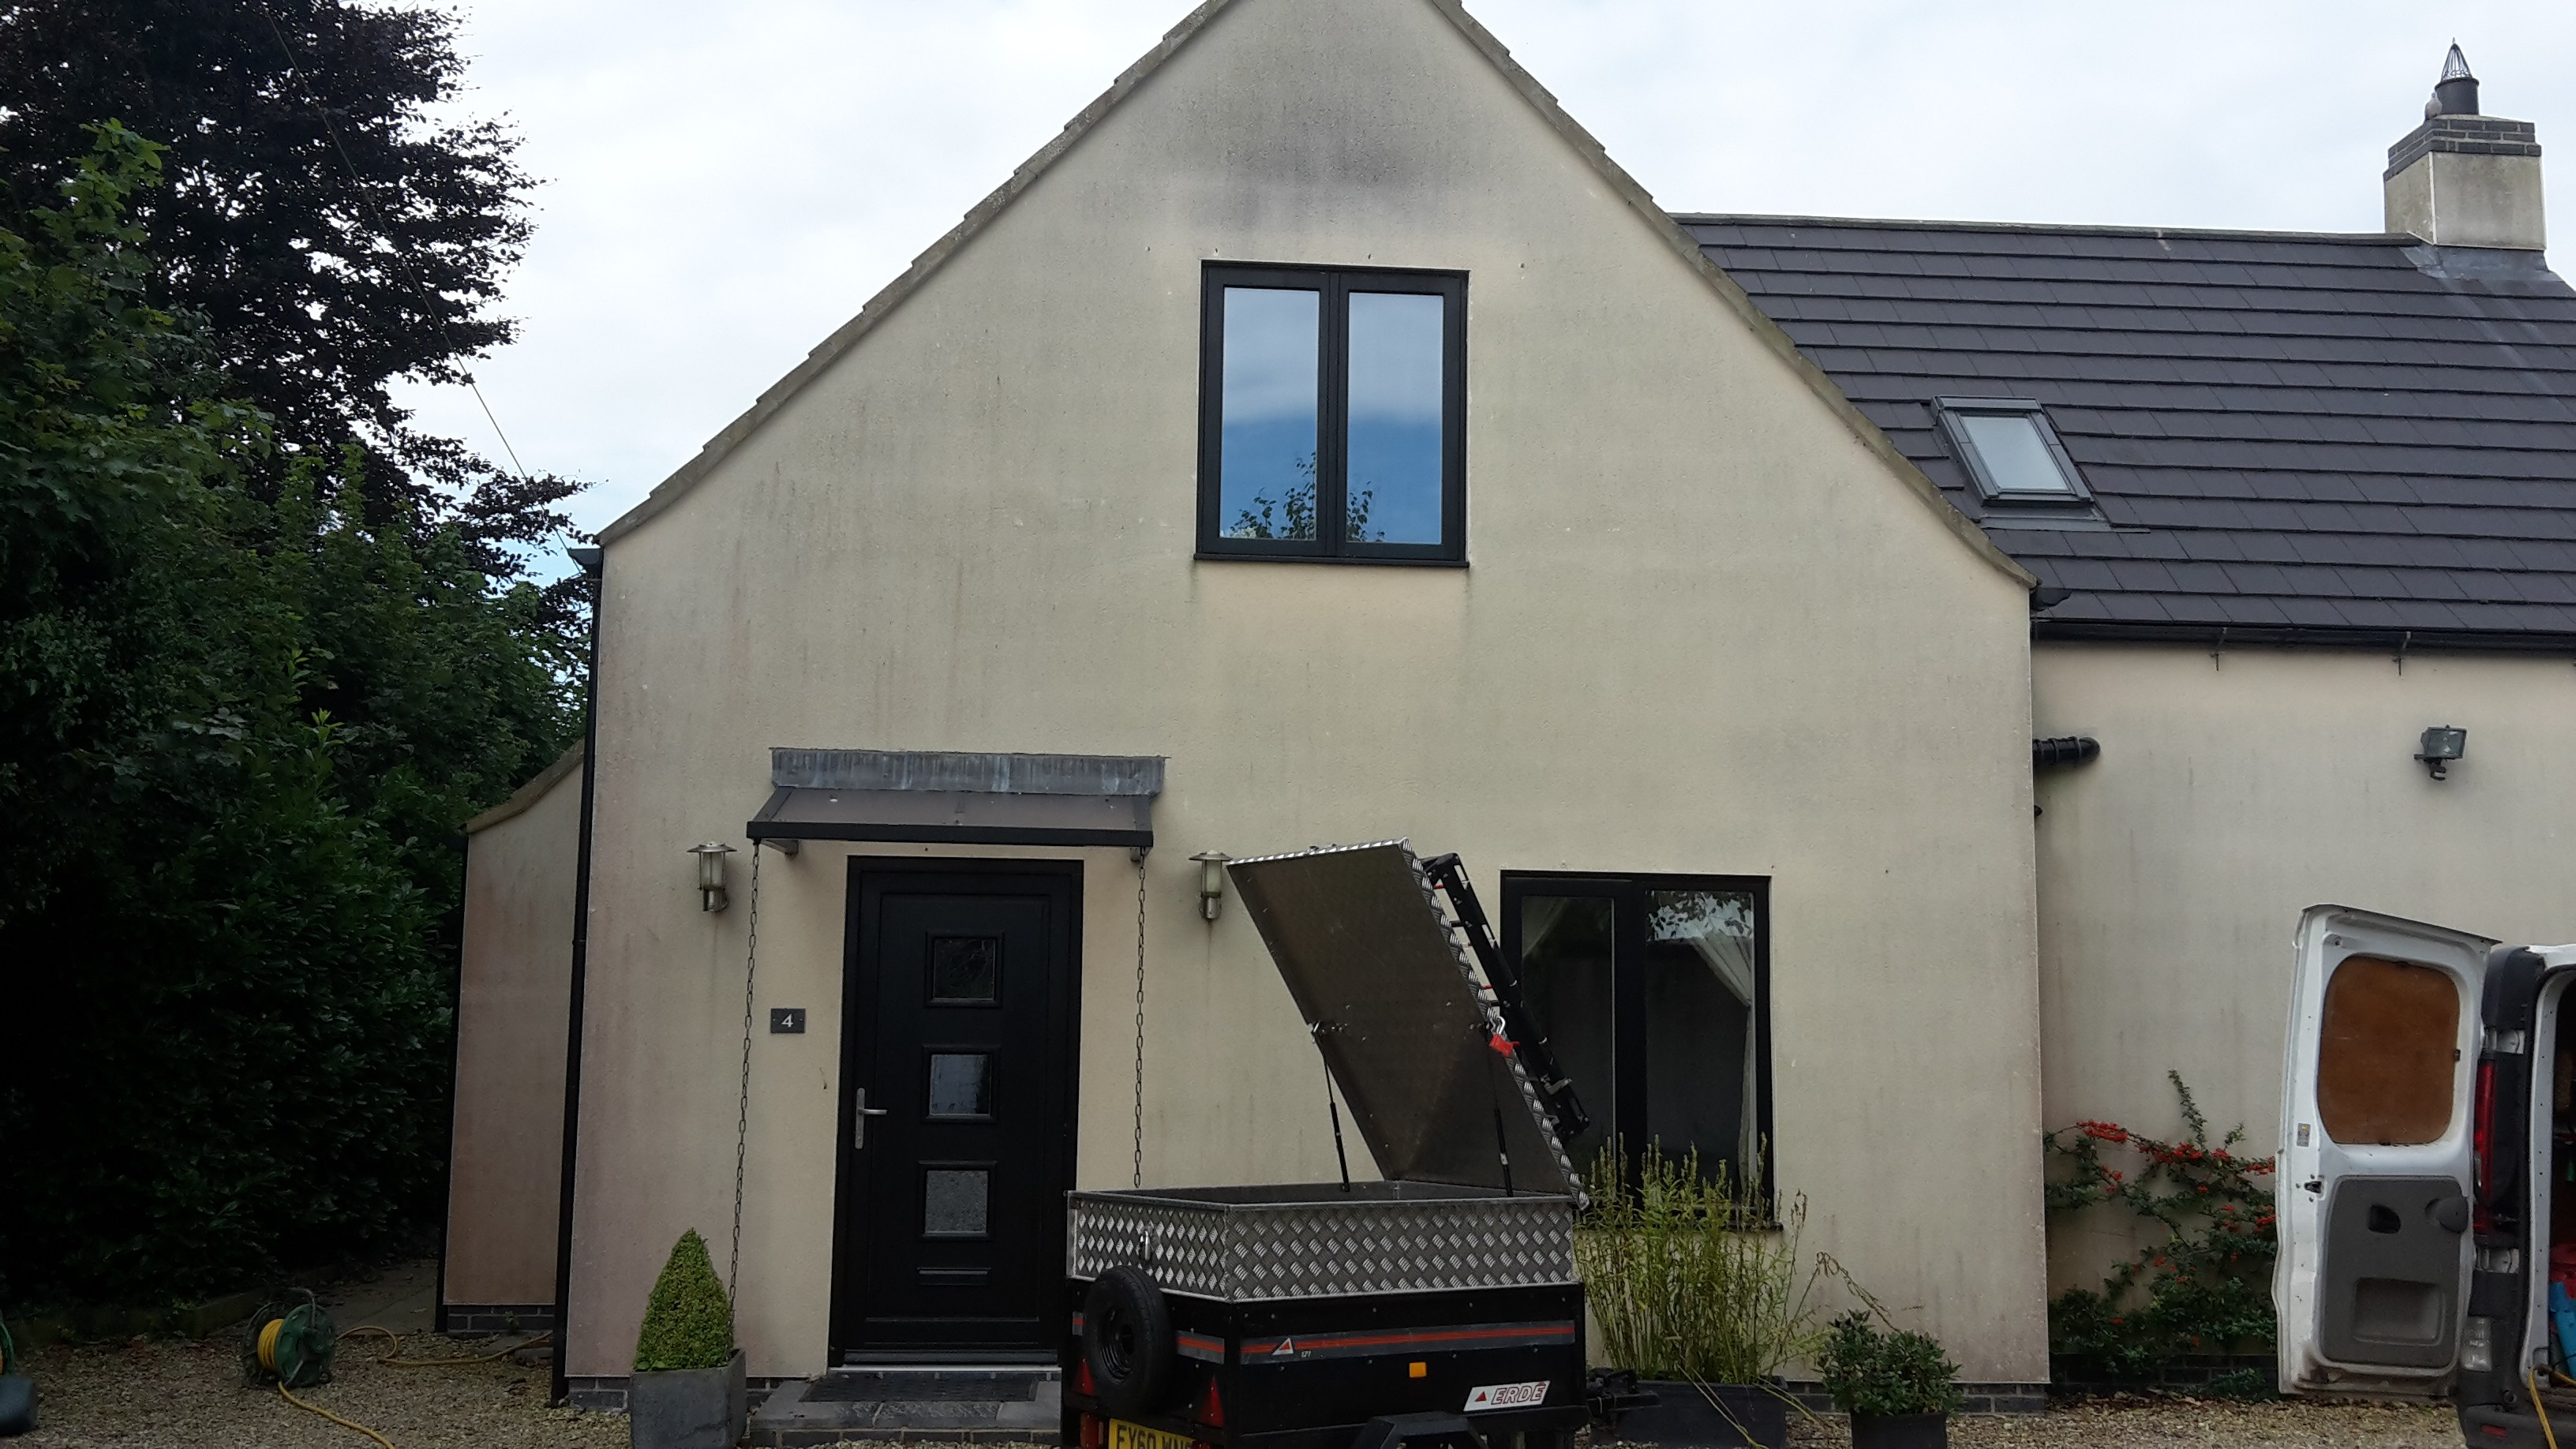 Render Cleaning Lincolnshire, Render Cleaning Grimsby, Render Cleaning Cleethorpes, Render Cleaning Louth, Render Cleaning Skegness, Render Cleaning Lincoln, Render Cleaning Scunthorpe